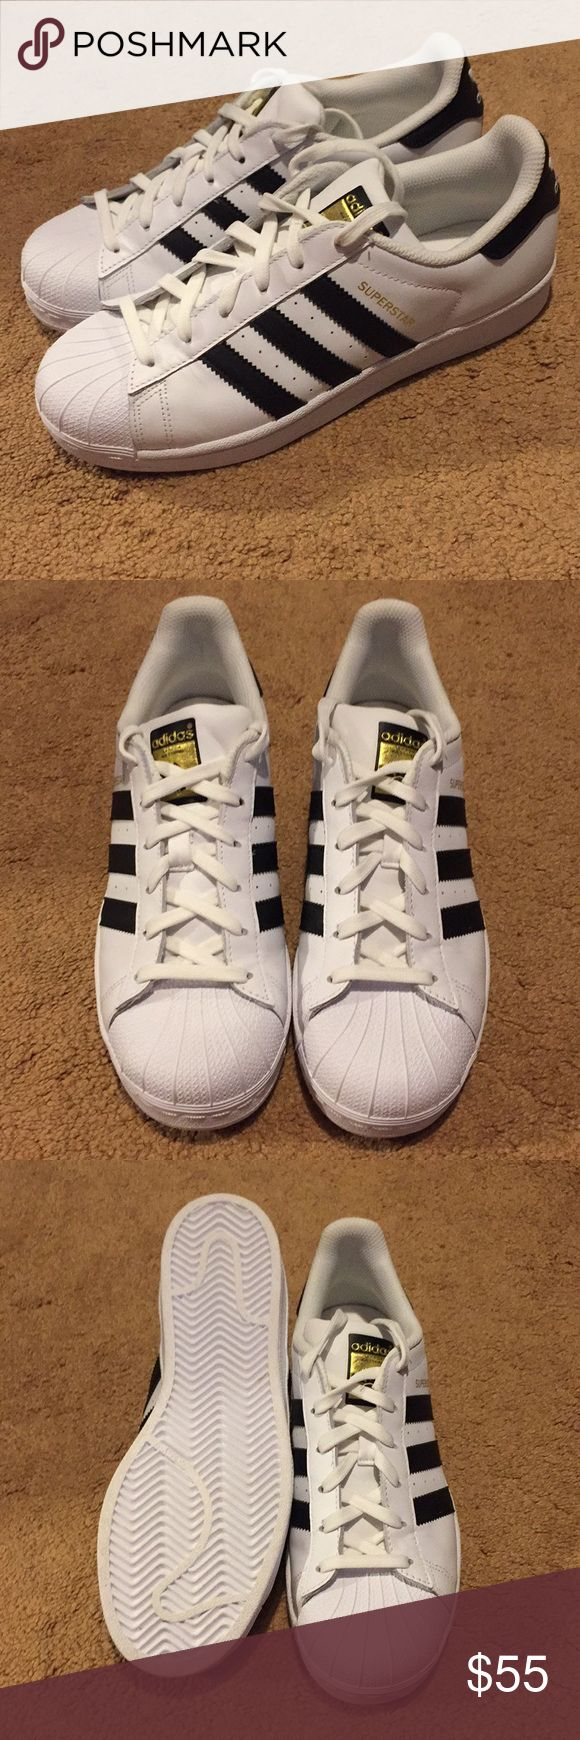 BRAND NEW Adidas Superstar shoes size 8! New adidas superstar shoes, size 8. They have been in my closet for a while and I've just never worn them. Feel free to make offers as well! adidas Shoes Sneakers